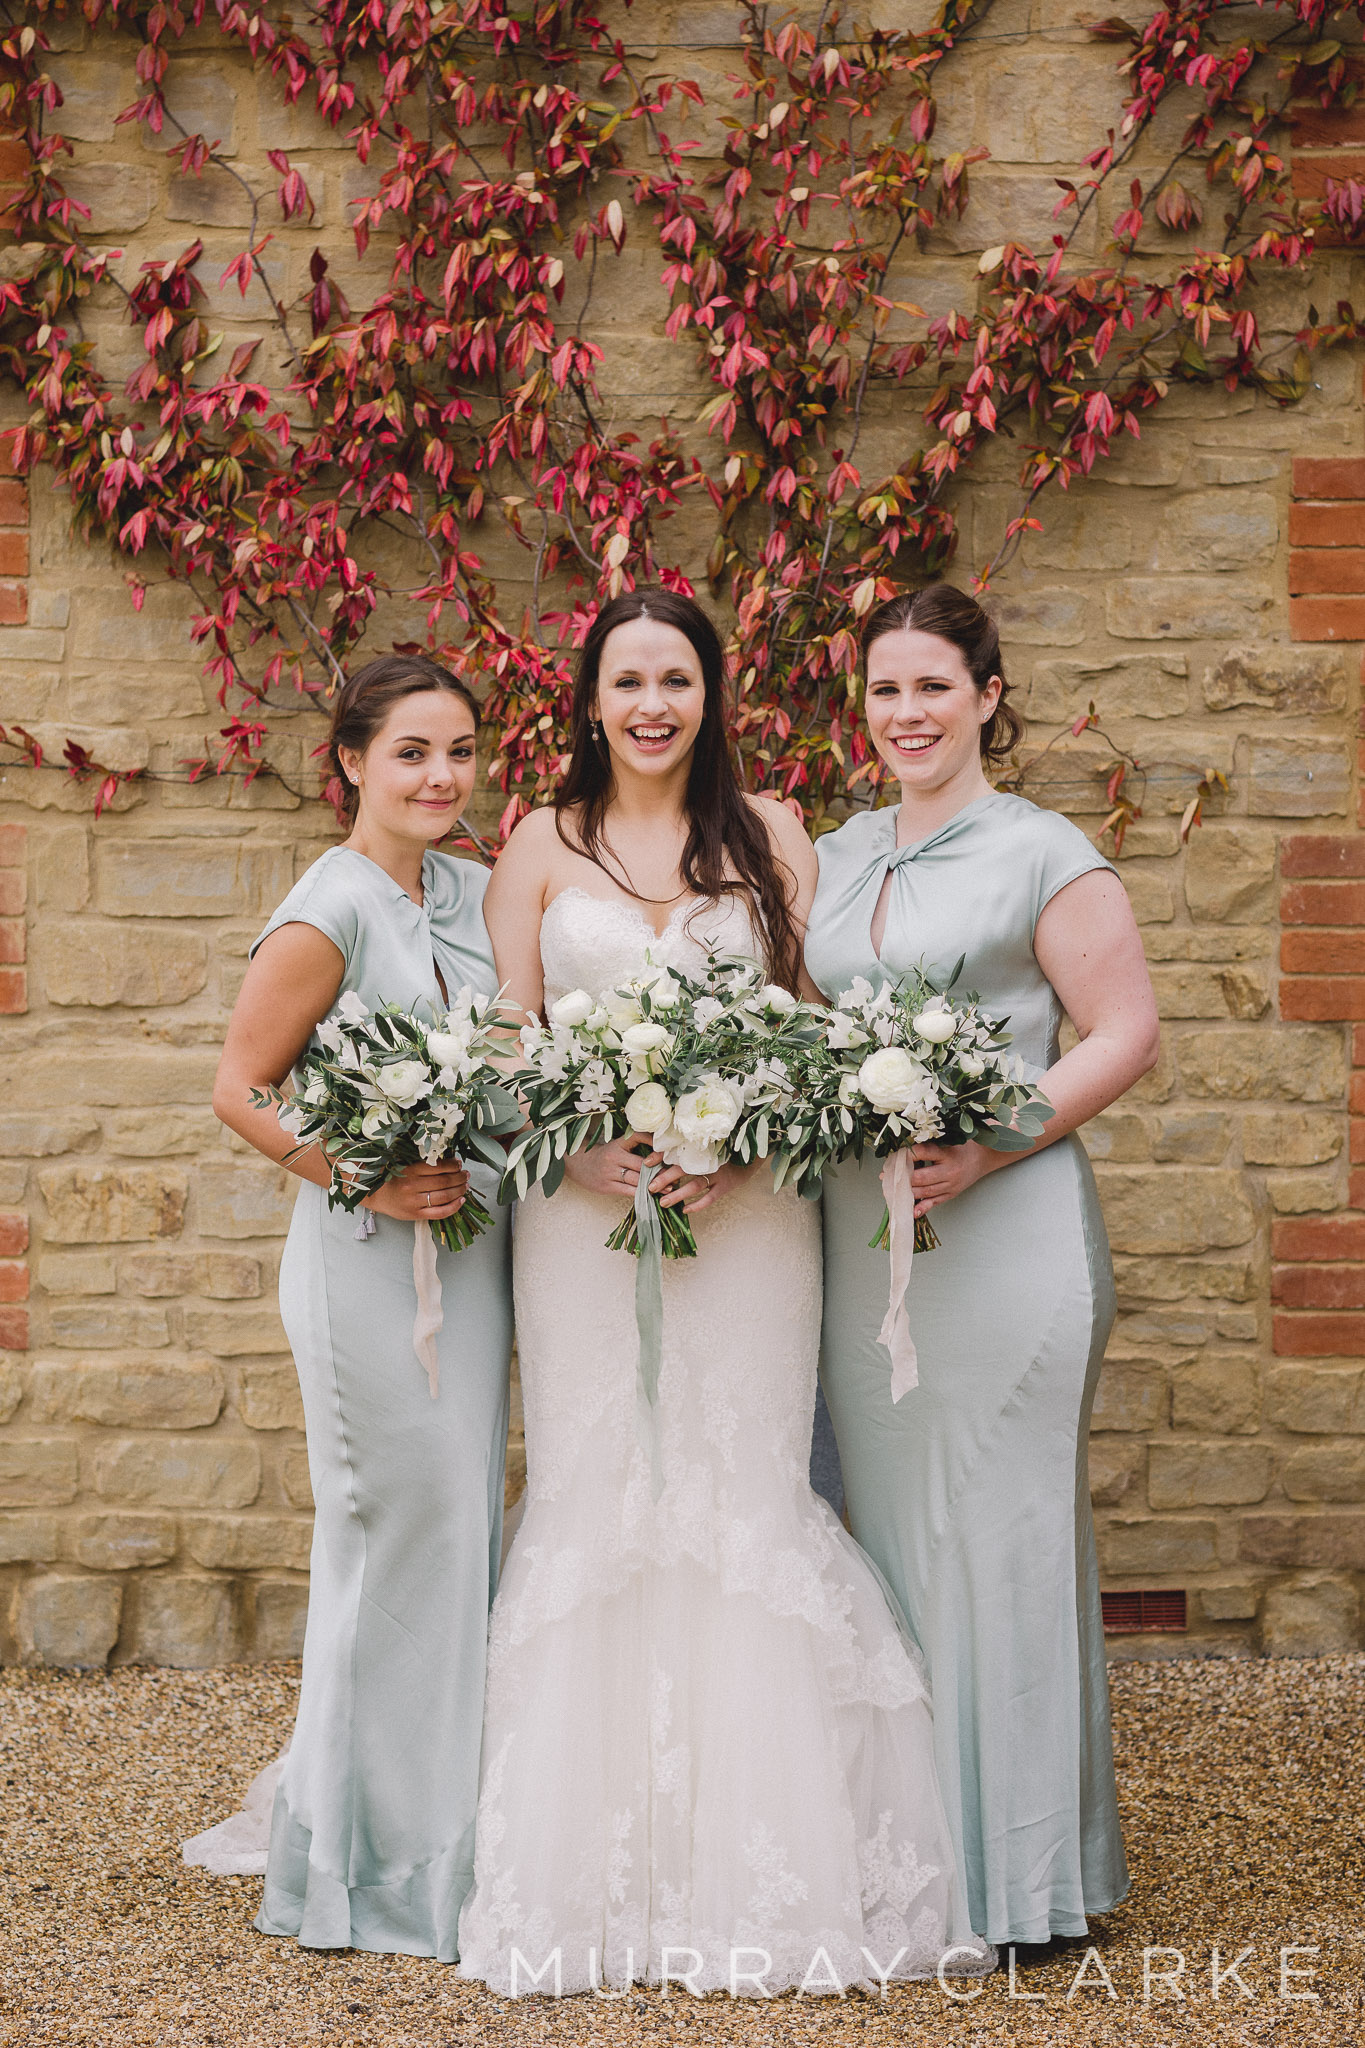 Laura's wedding at Millbridge Court